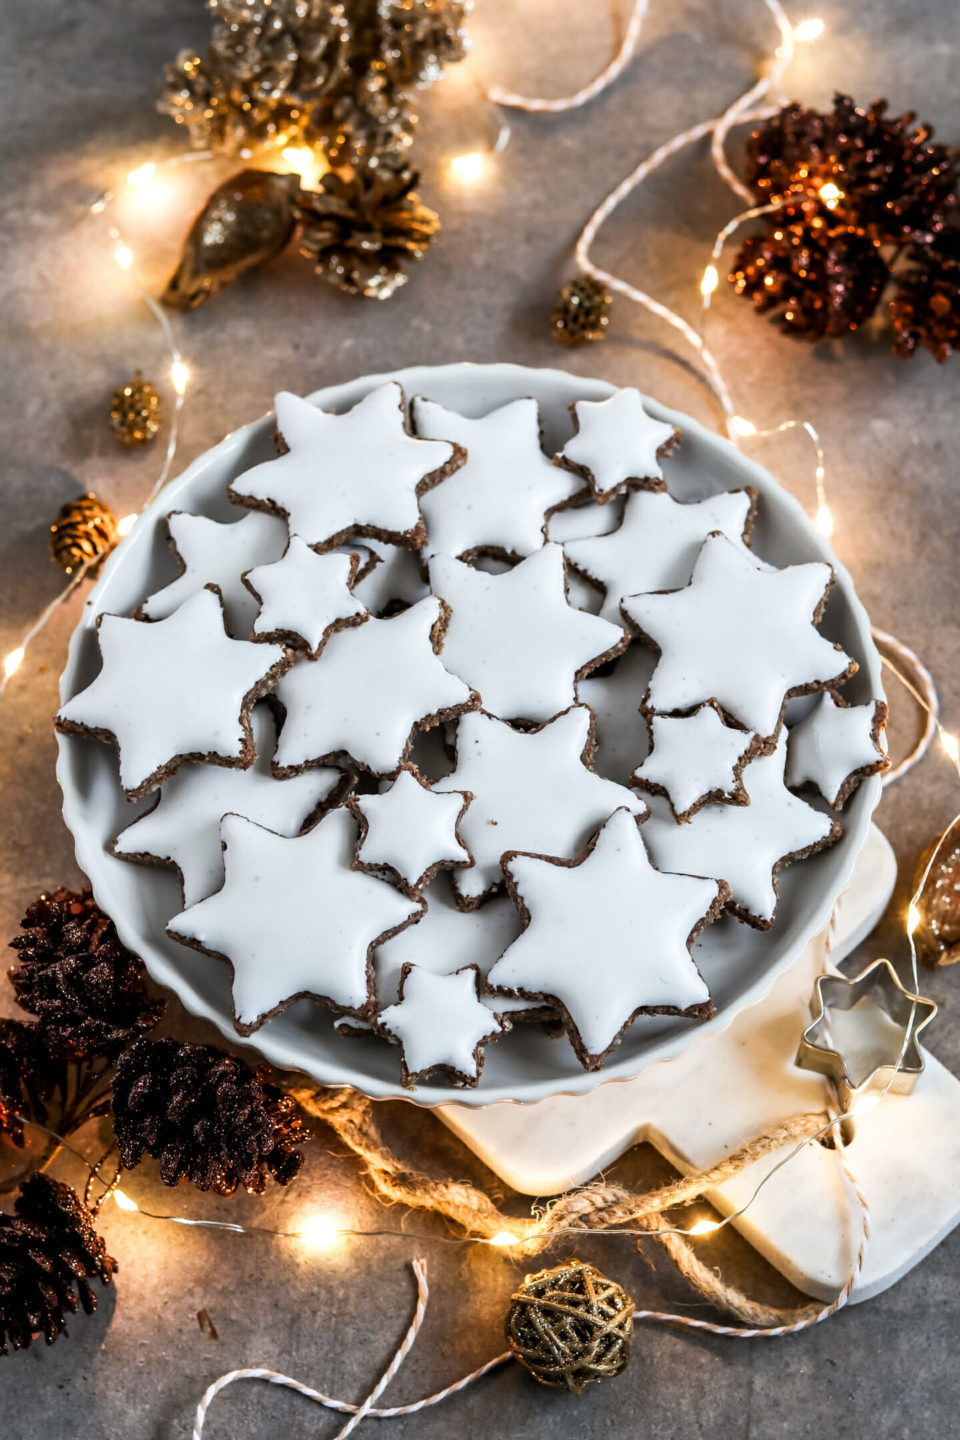 Vegan Cinnamon Stars served on a dessert plate with Christmas decoration.